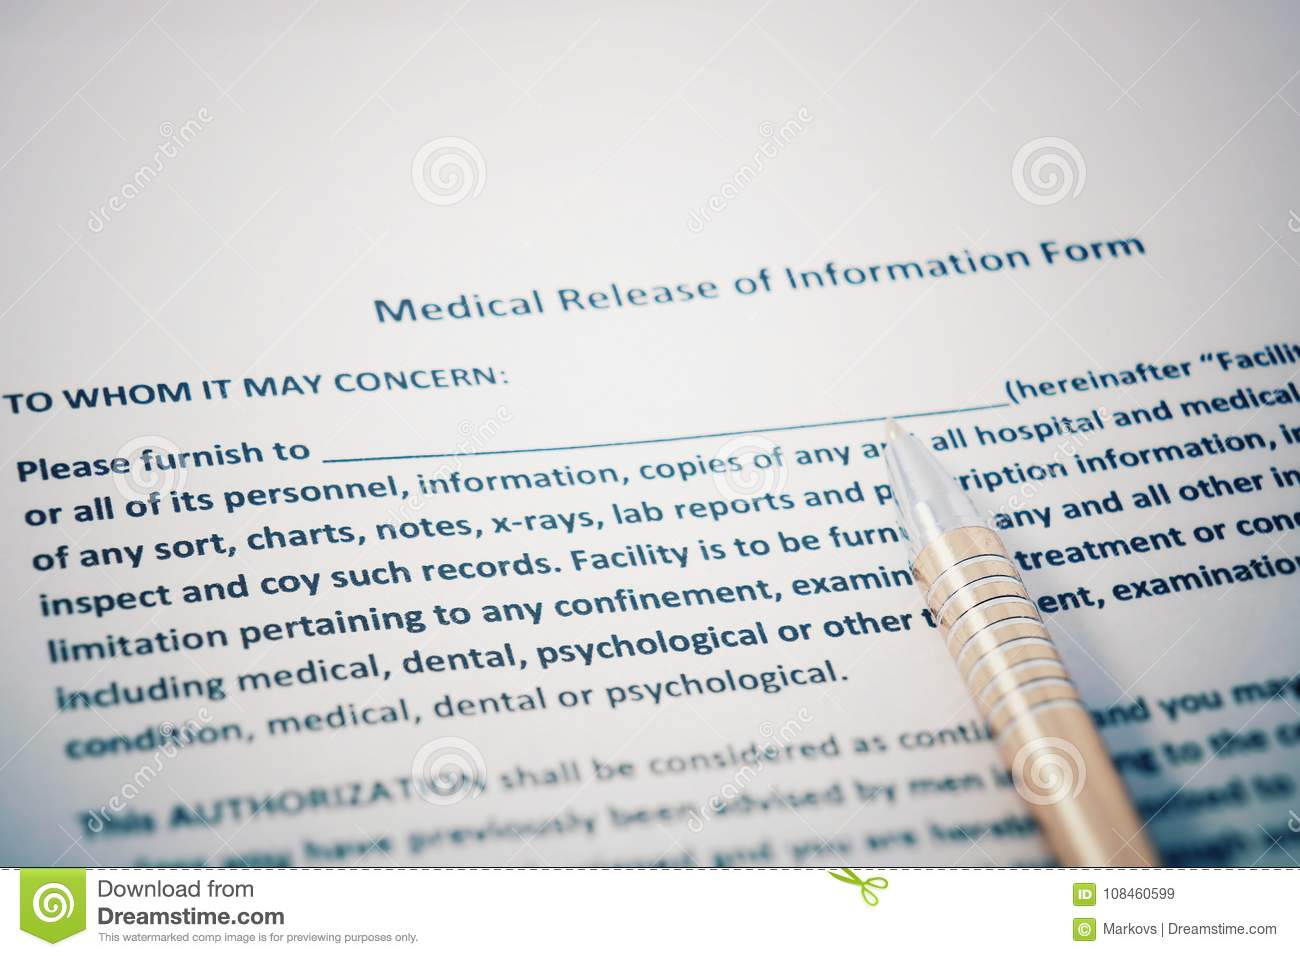 Download Patient Release Of Information Form With HIPAA Regulations  Documents. Medical Release Of Information Form